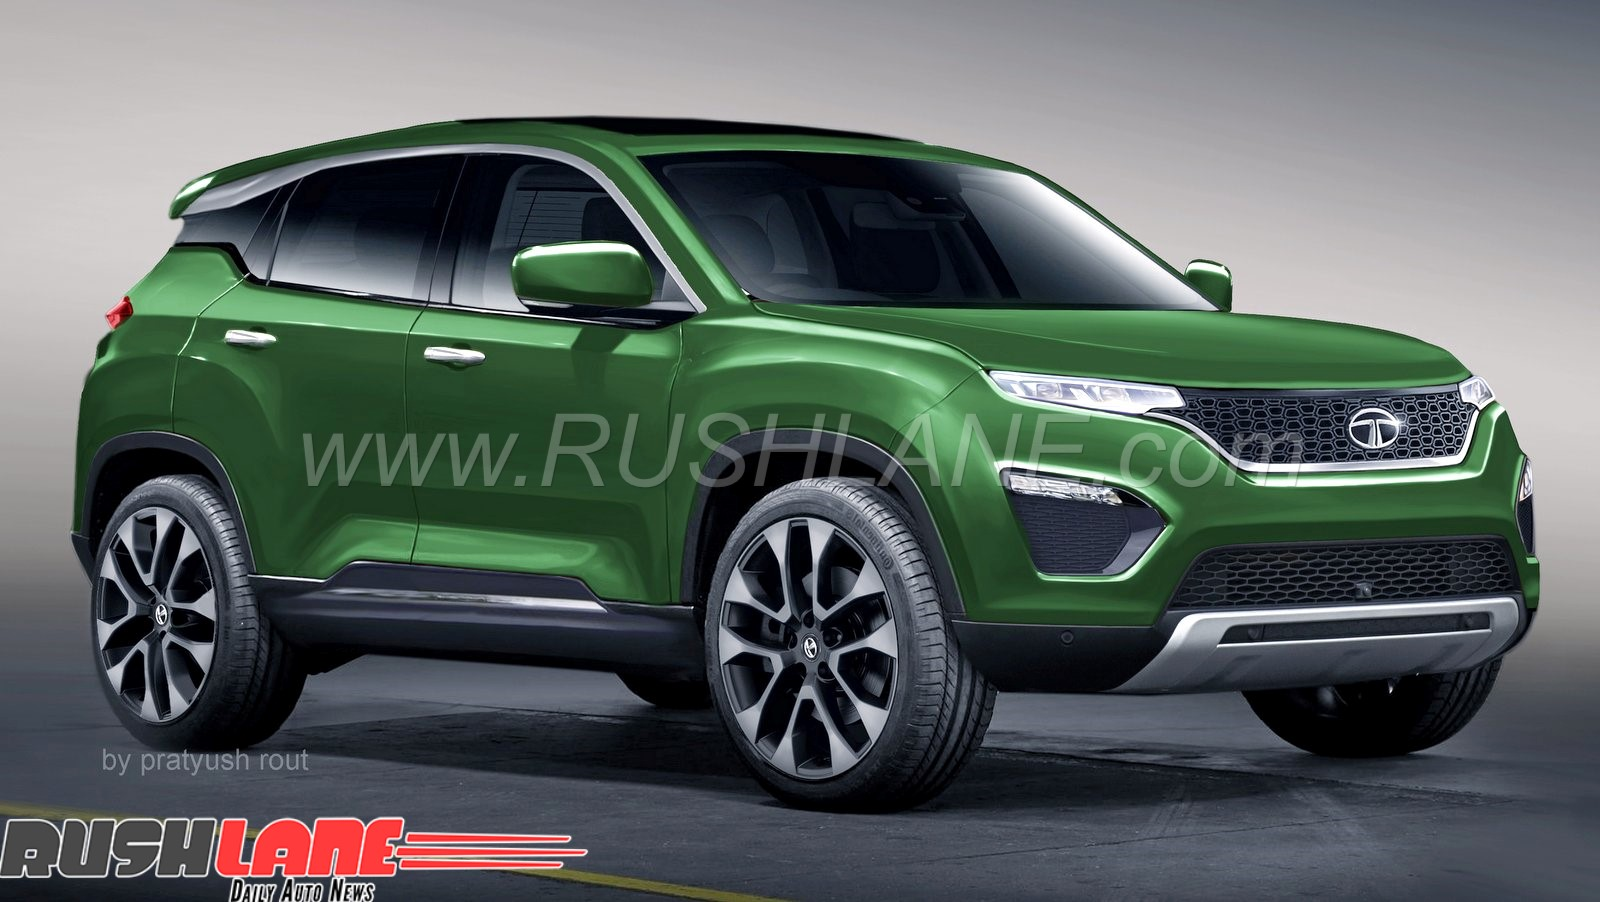 Land Rover Vs Jeep >> Tata Harrier to get online configurator upon launch - Just like Jaguar Land Rover cars